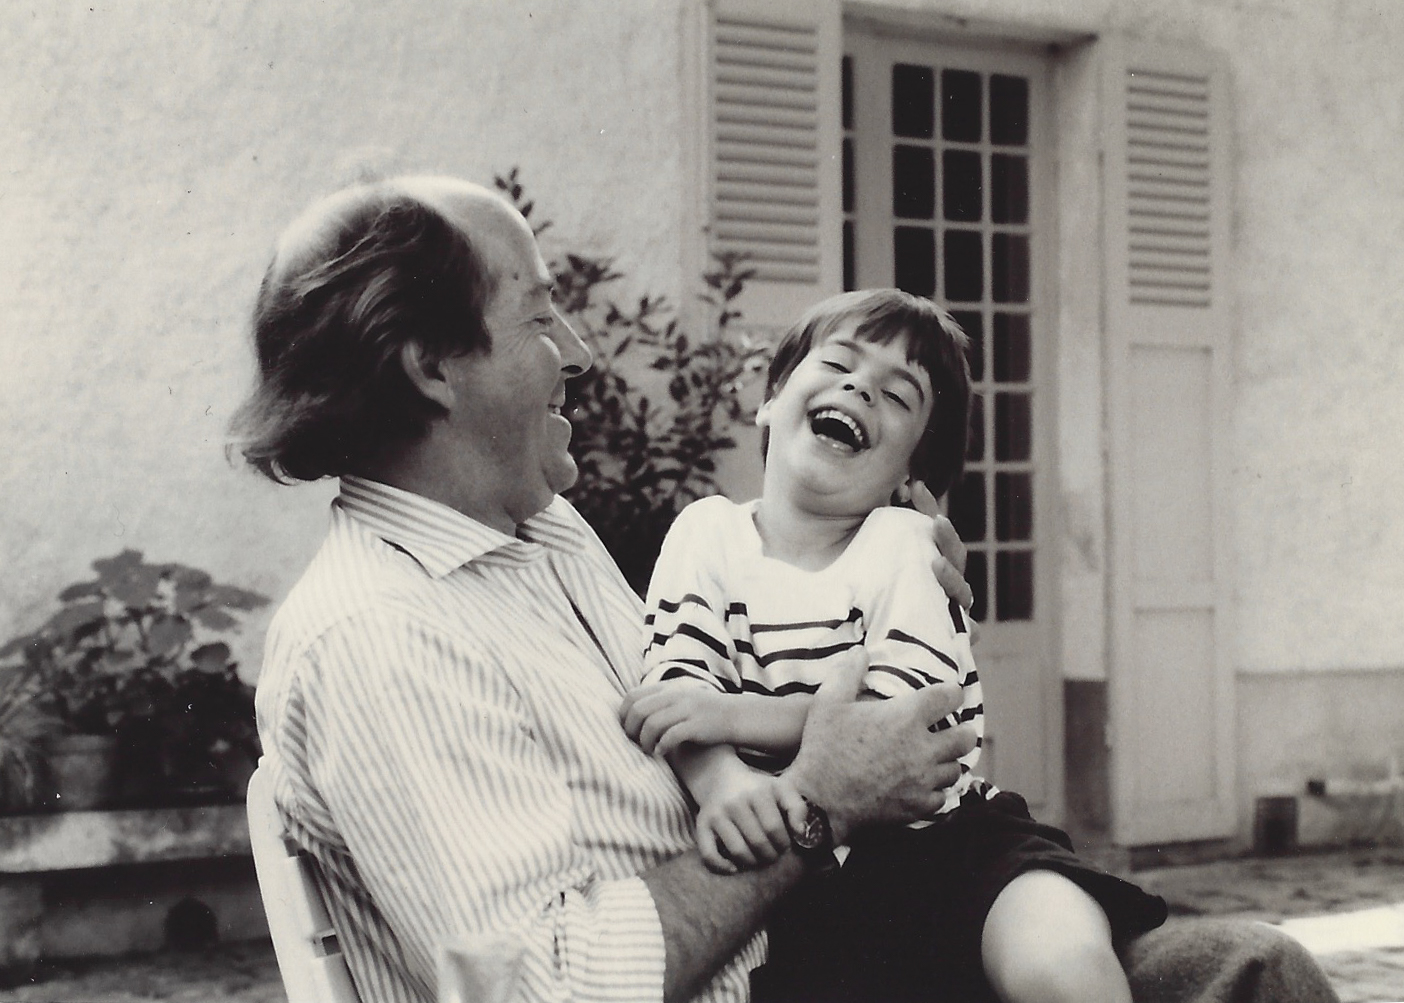 Family Photo: My son, Alex, and his Dada, 1988